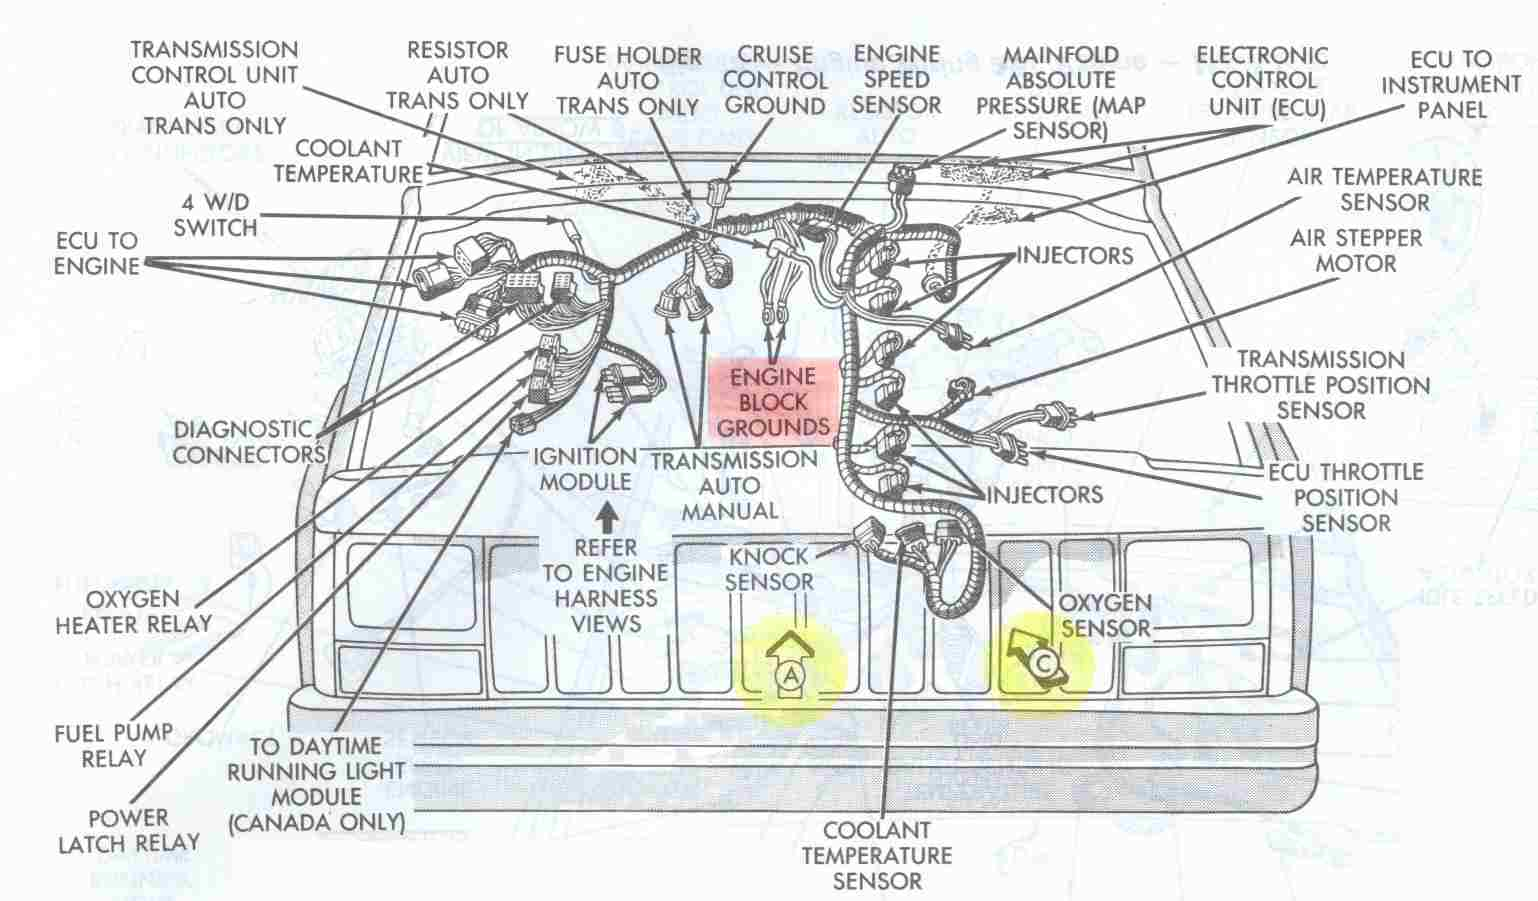 1995 Jeep Cherokee Wiring Diagram on car stereo color wiring diagram